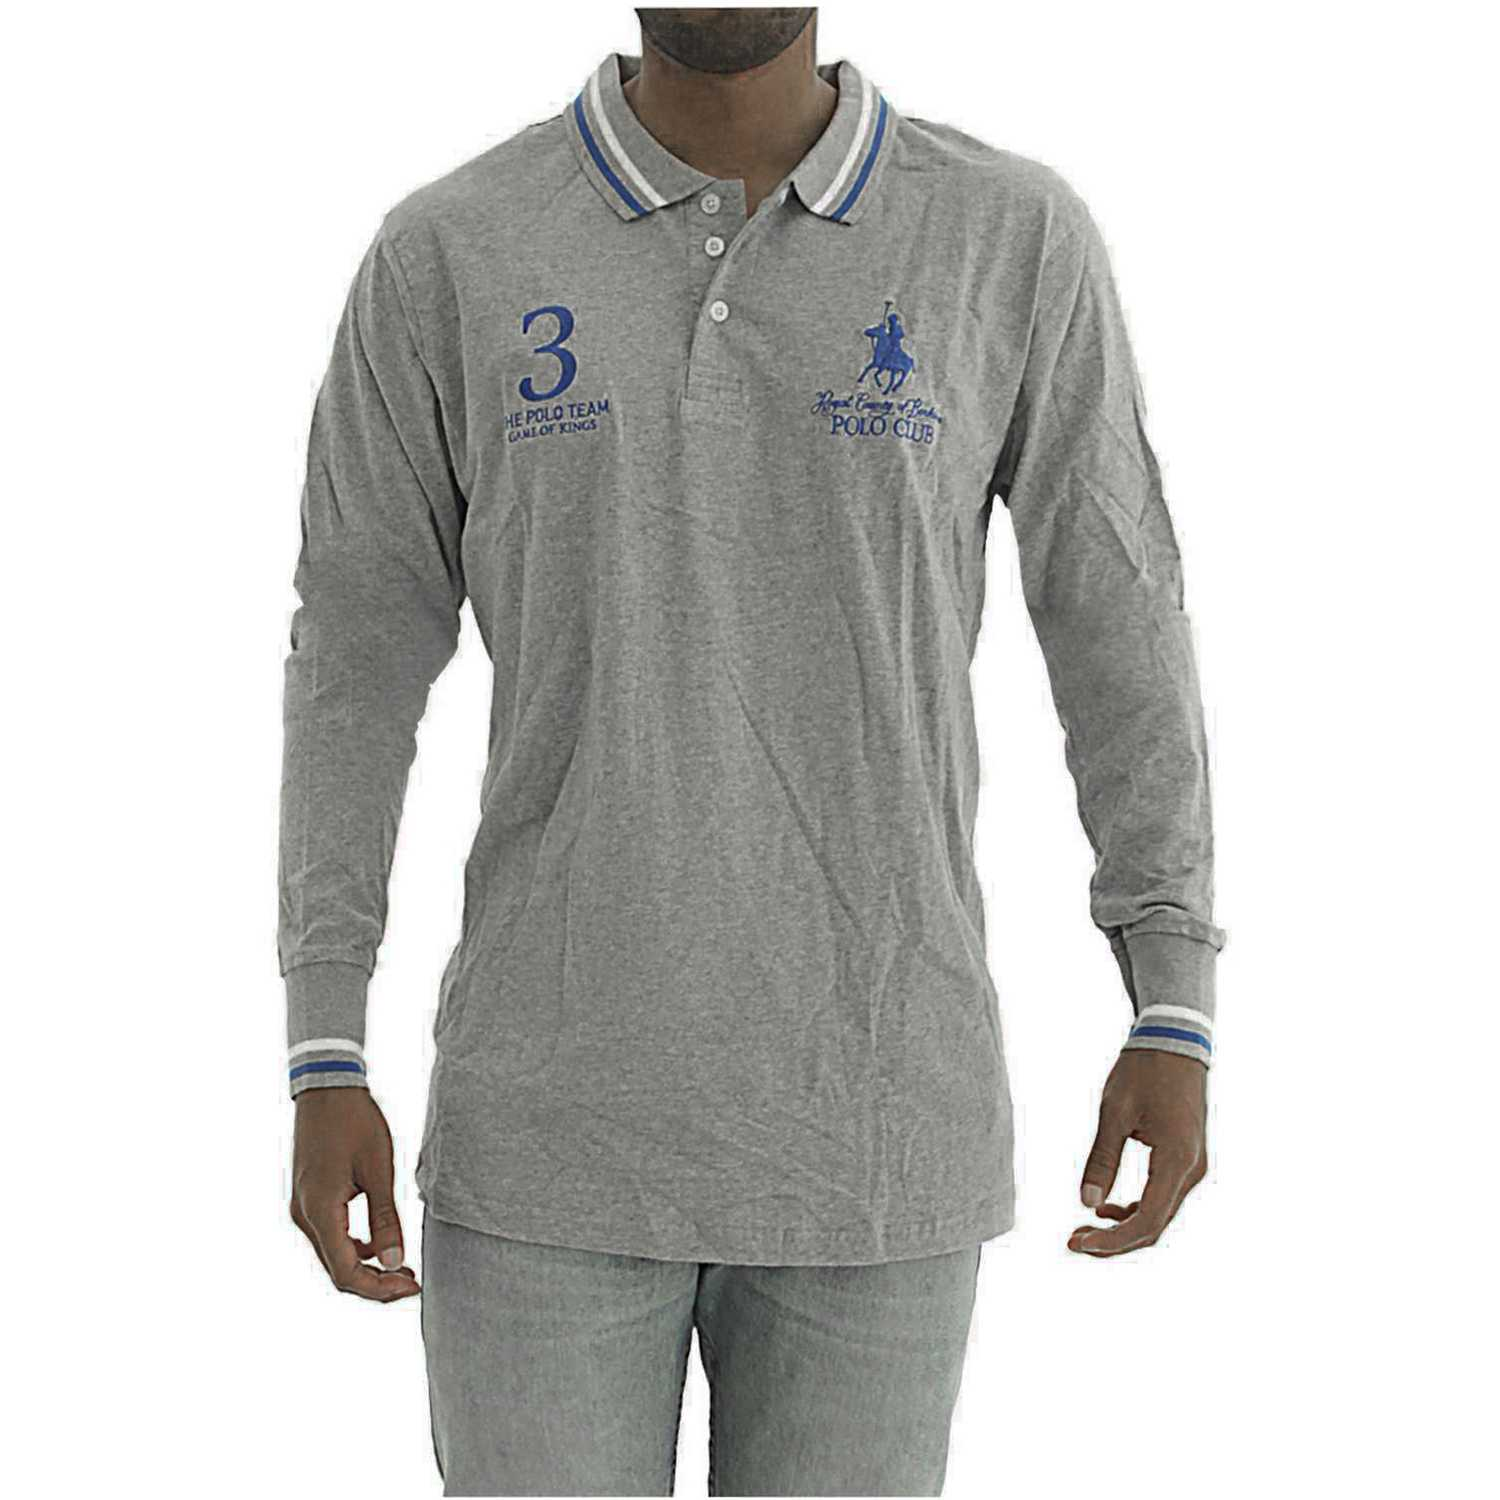 BERKSHIRE POLO CLUB polera-159-1536187 Gris Hoodies y Sweaters Fashion